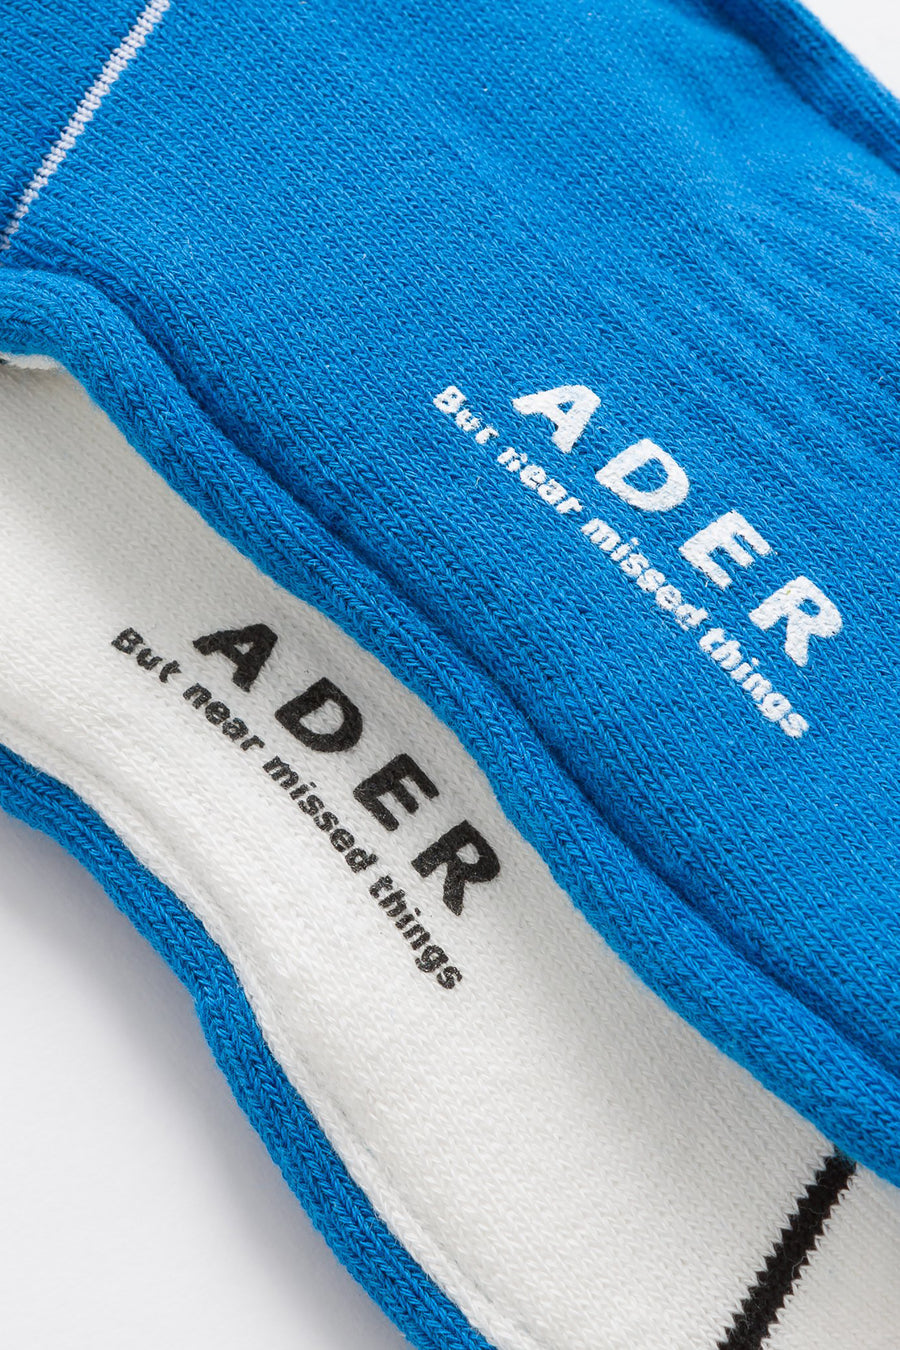 Adererror Ade Sock in Blue/White - Notre